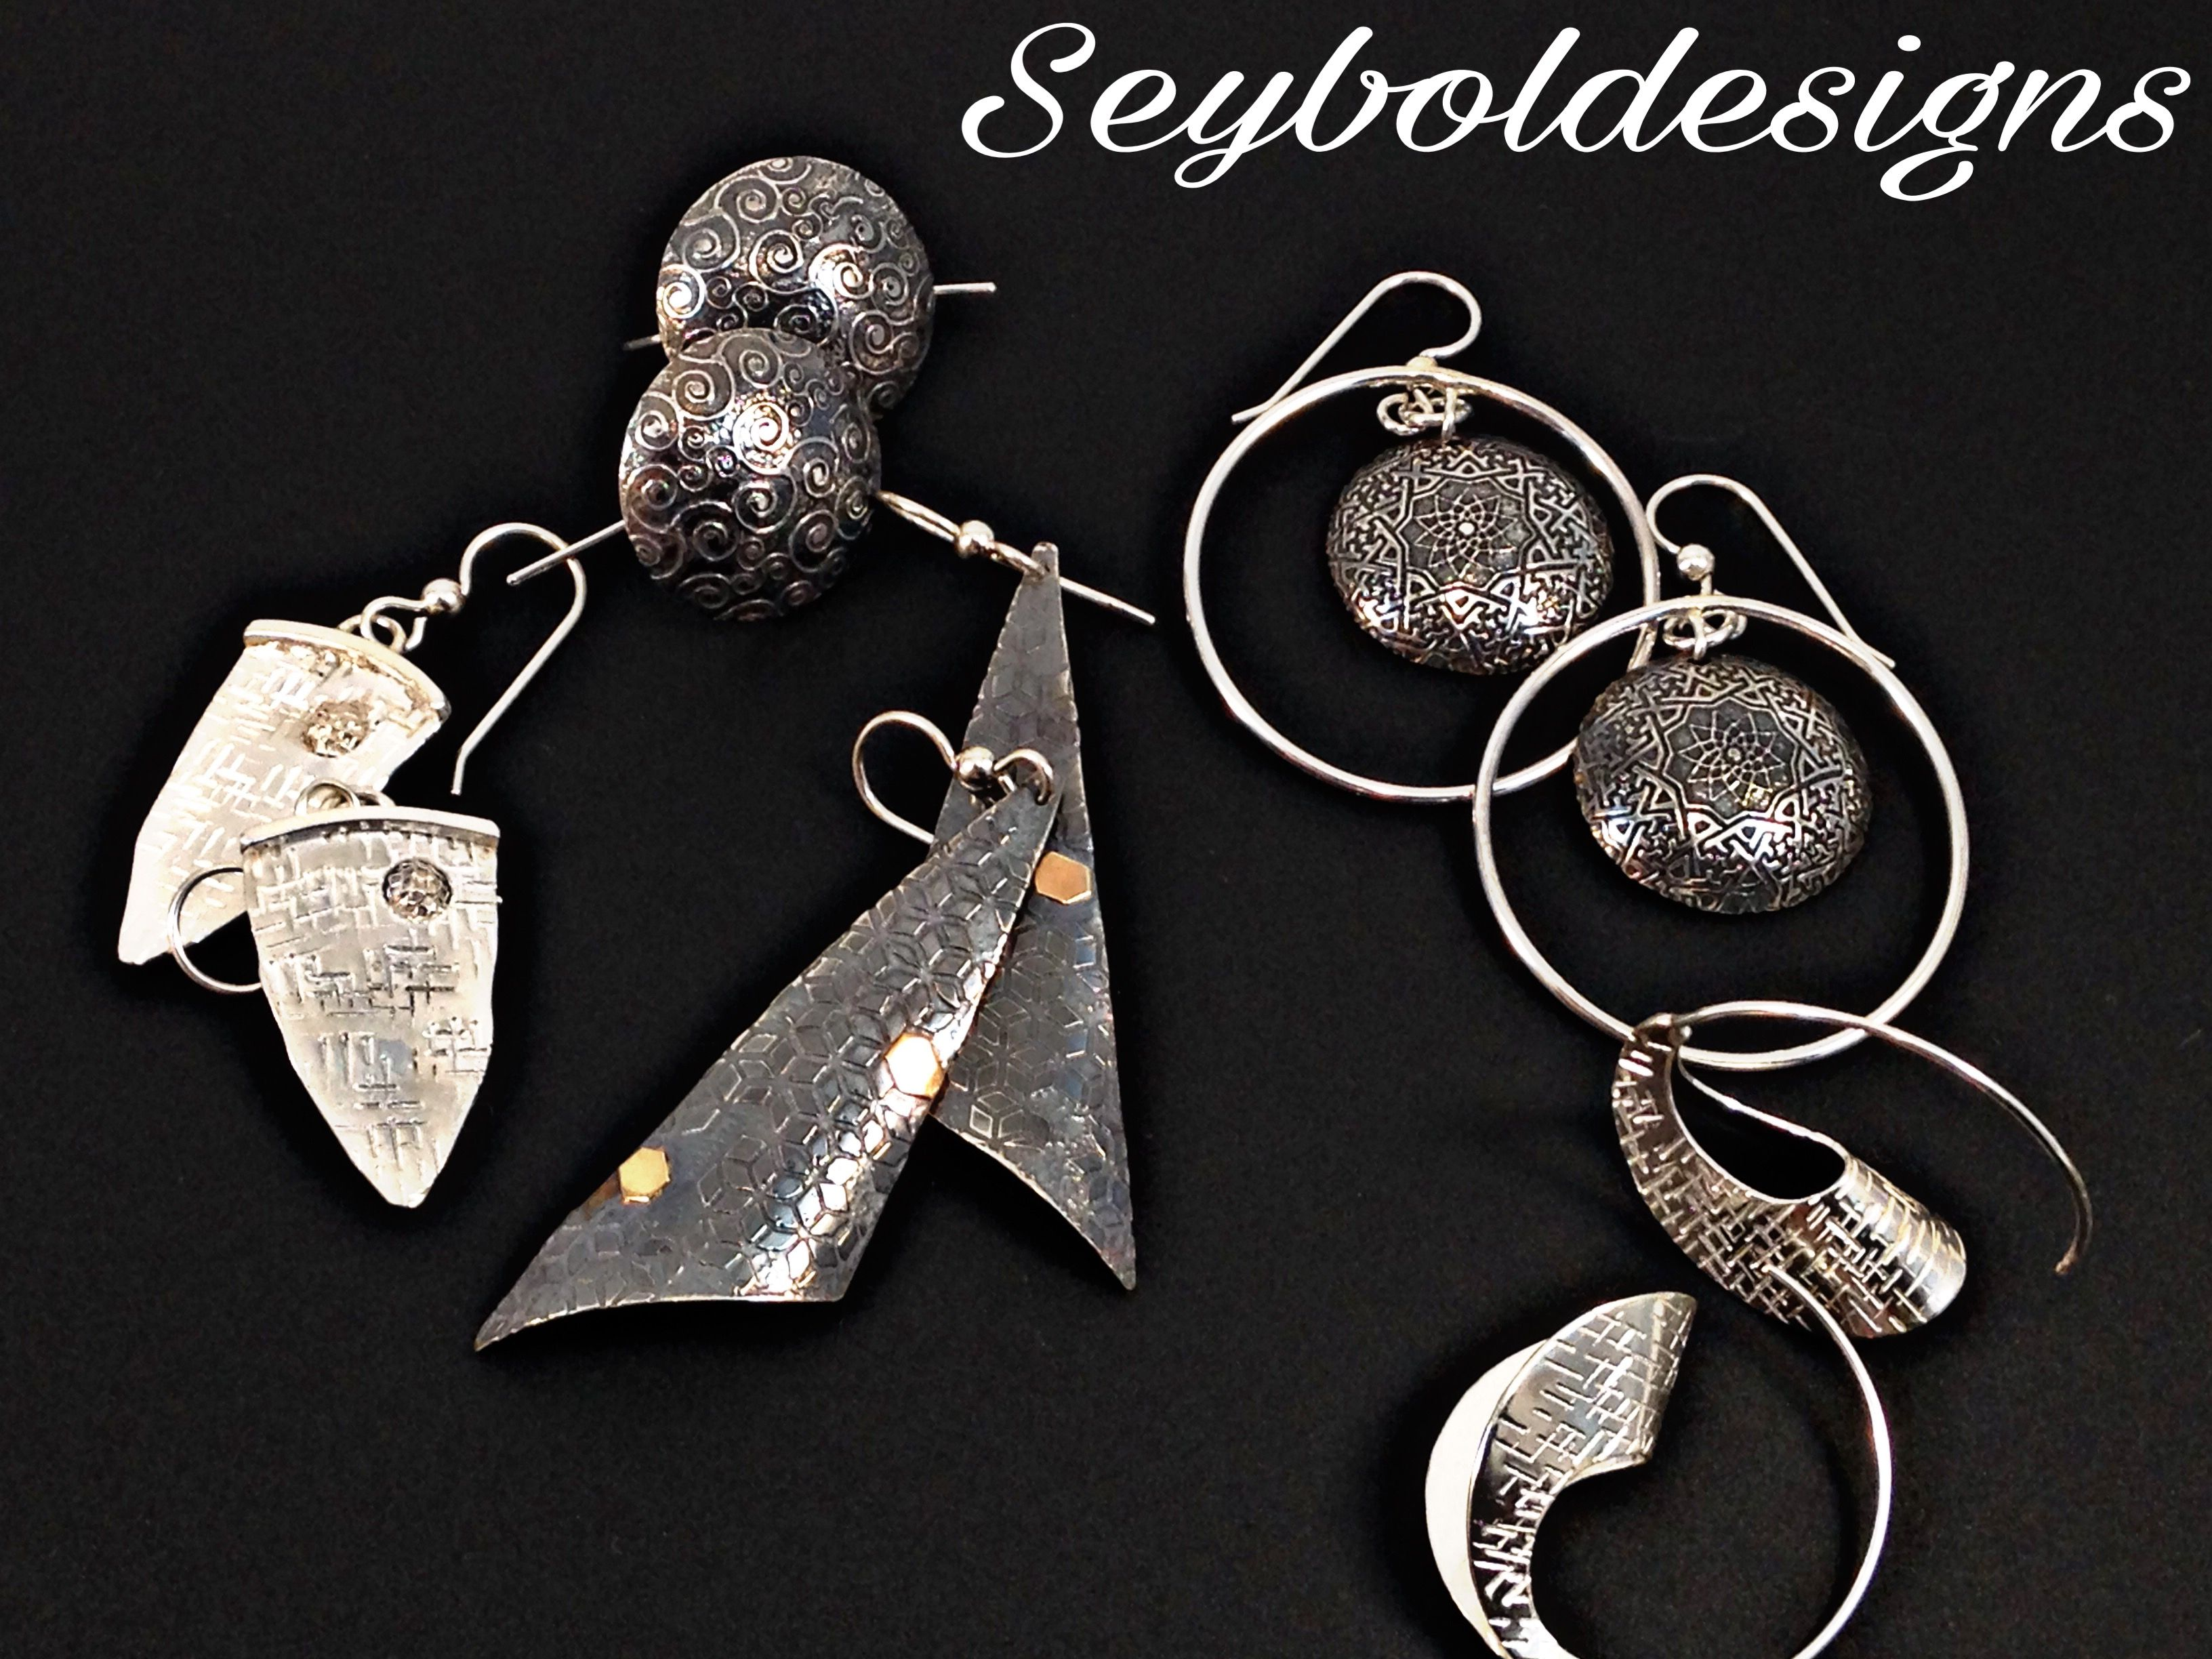 Belly button piercing side view  Seyboldesigns OOAK fine Jewelry in Michigan  Pinterest MiniMall